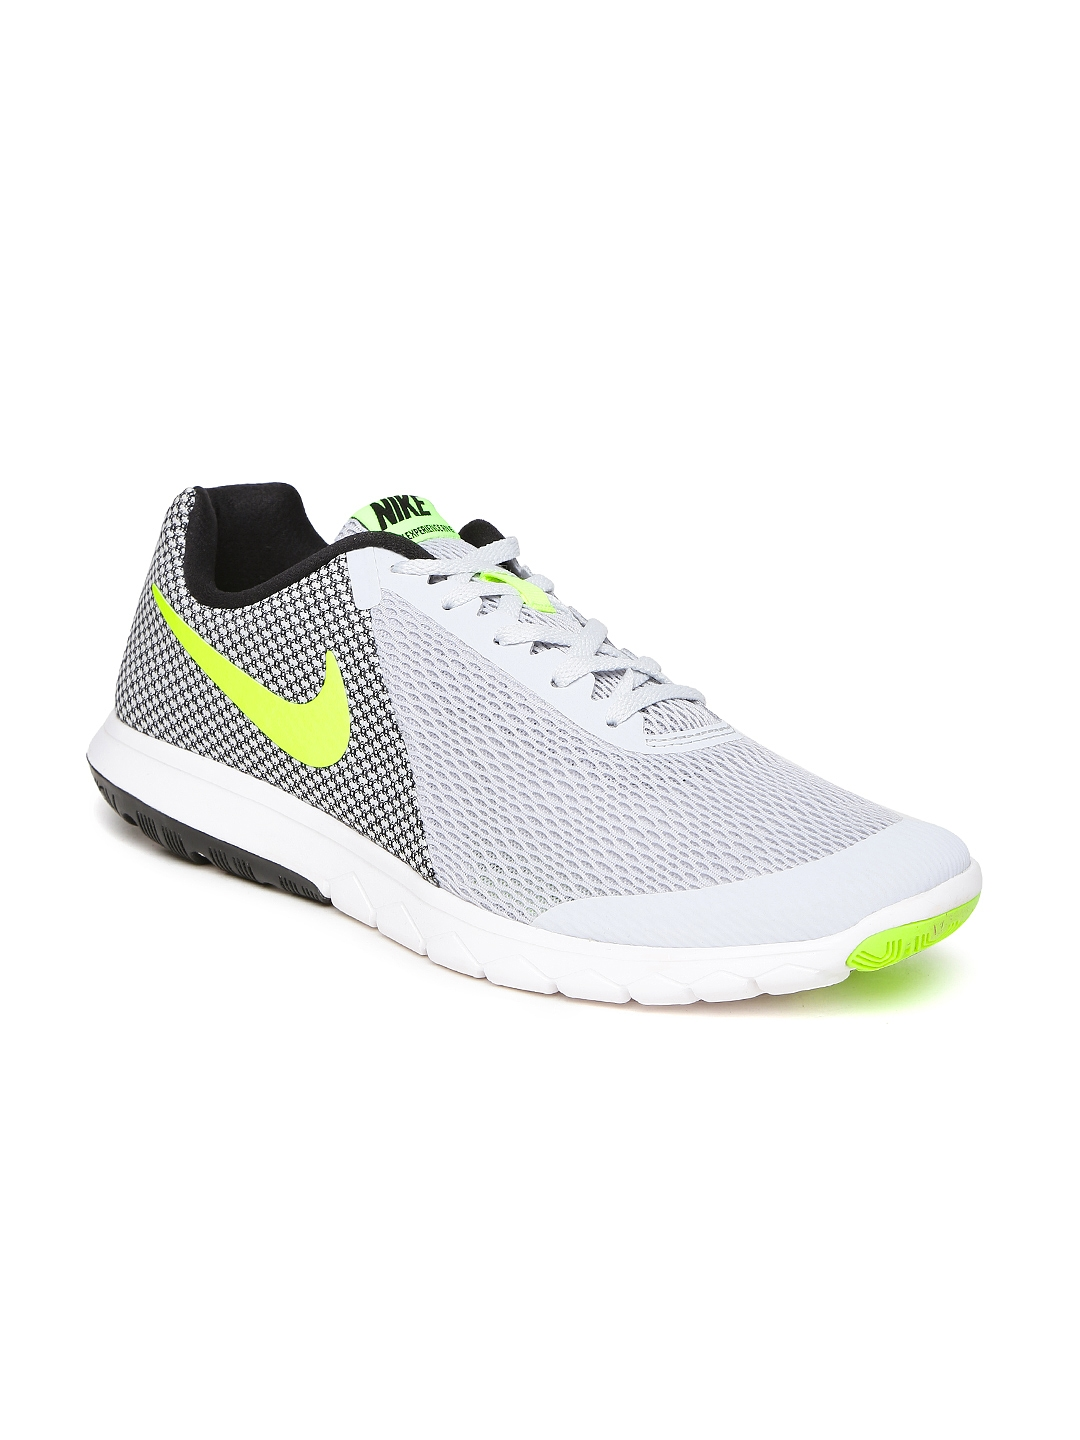 1f0e7e51c2e6 Buy Nike Men Grey Flex Experience RN 6 Running Shoes - Sports Shoes ...